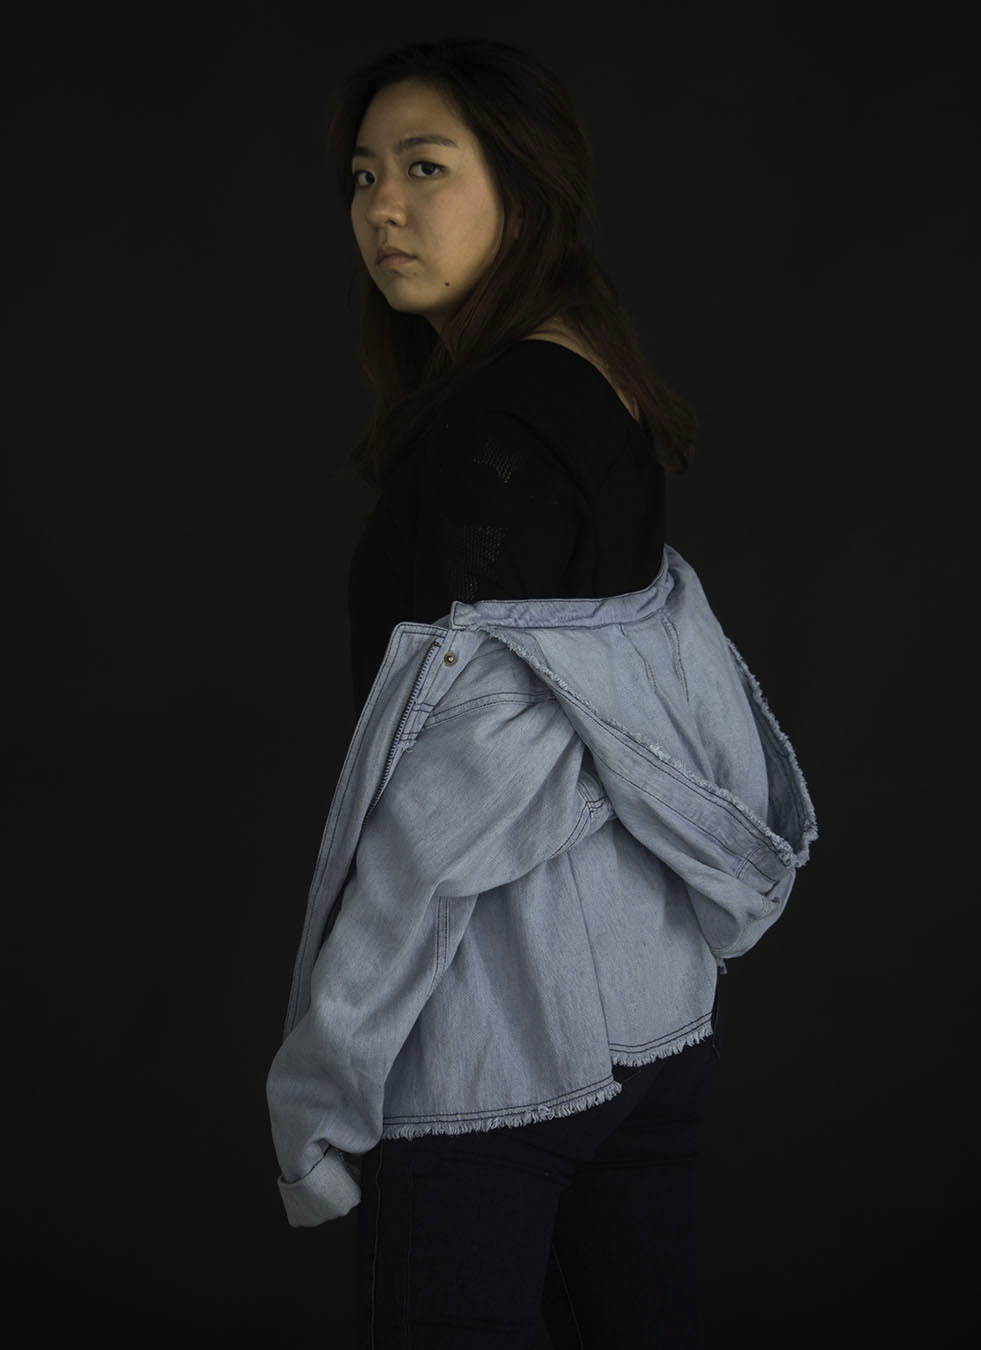 Joy_Lewis_fashion_photography_JACKETS_JEAN_WITH_HOOD_HANGING_OFF_ARMS